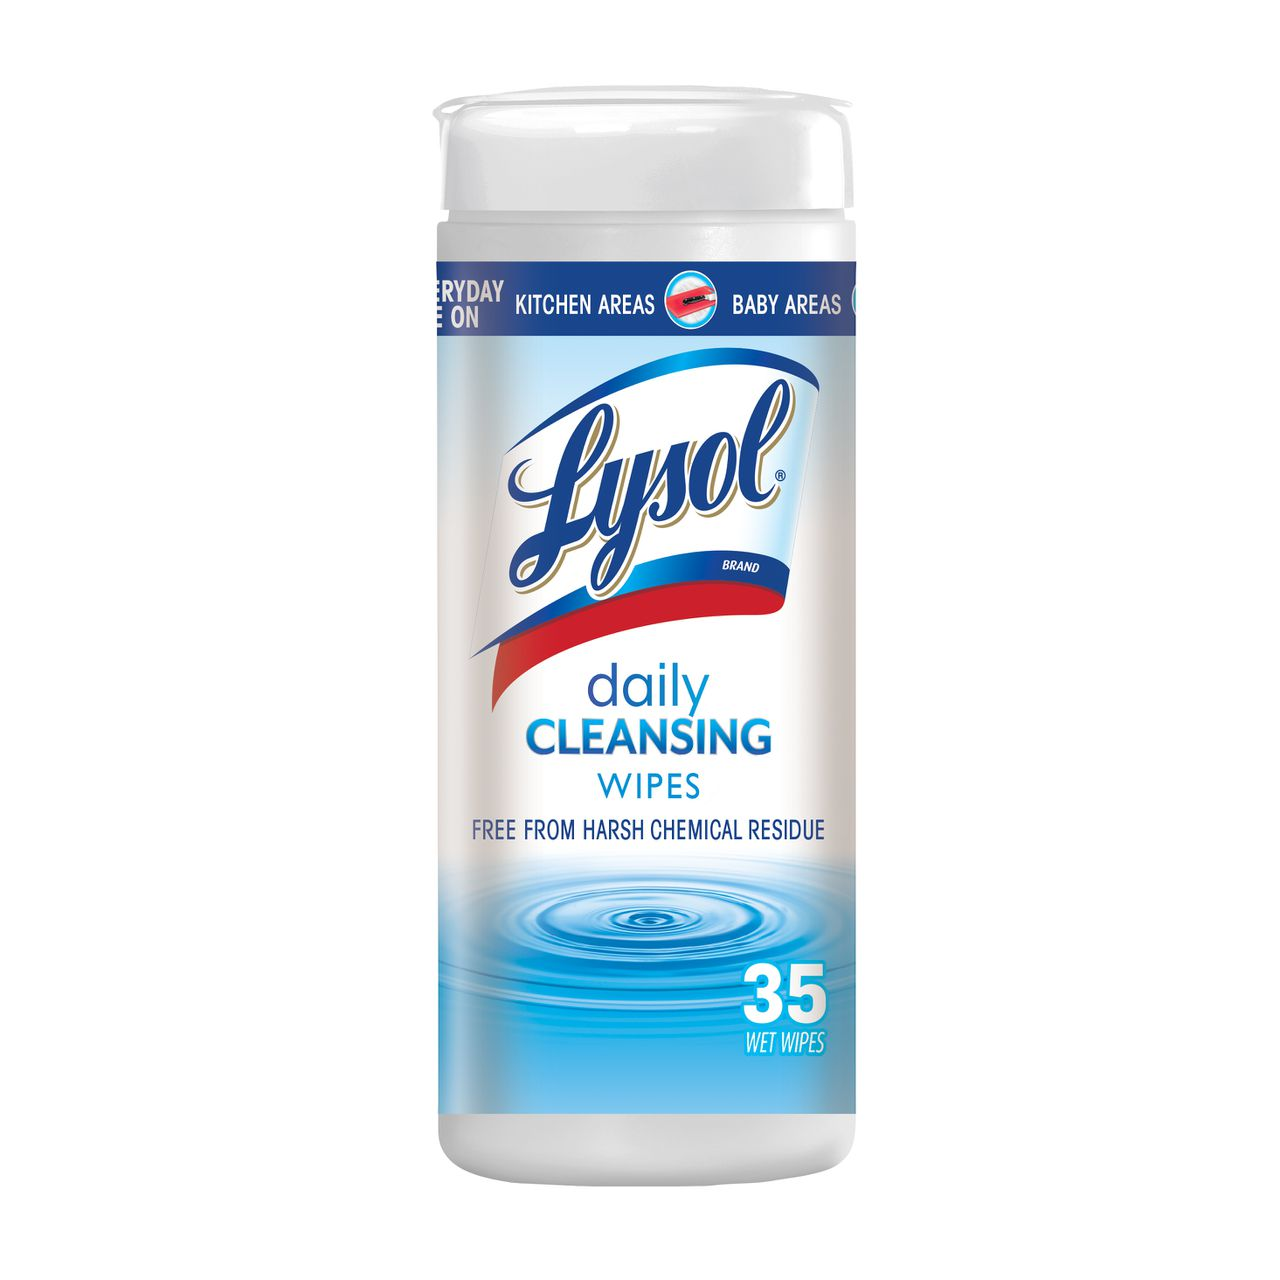 Lysol Daily Cleanser | Lysol